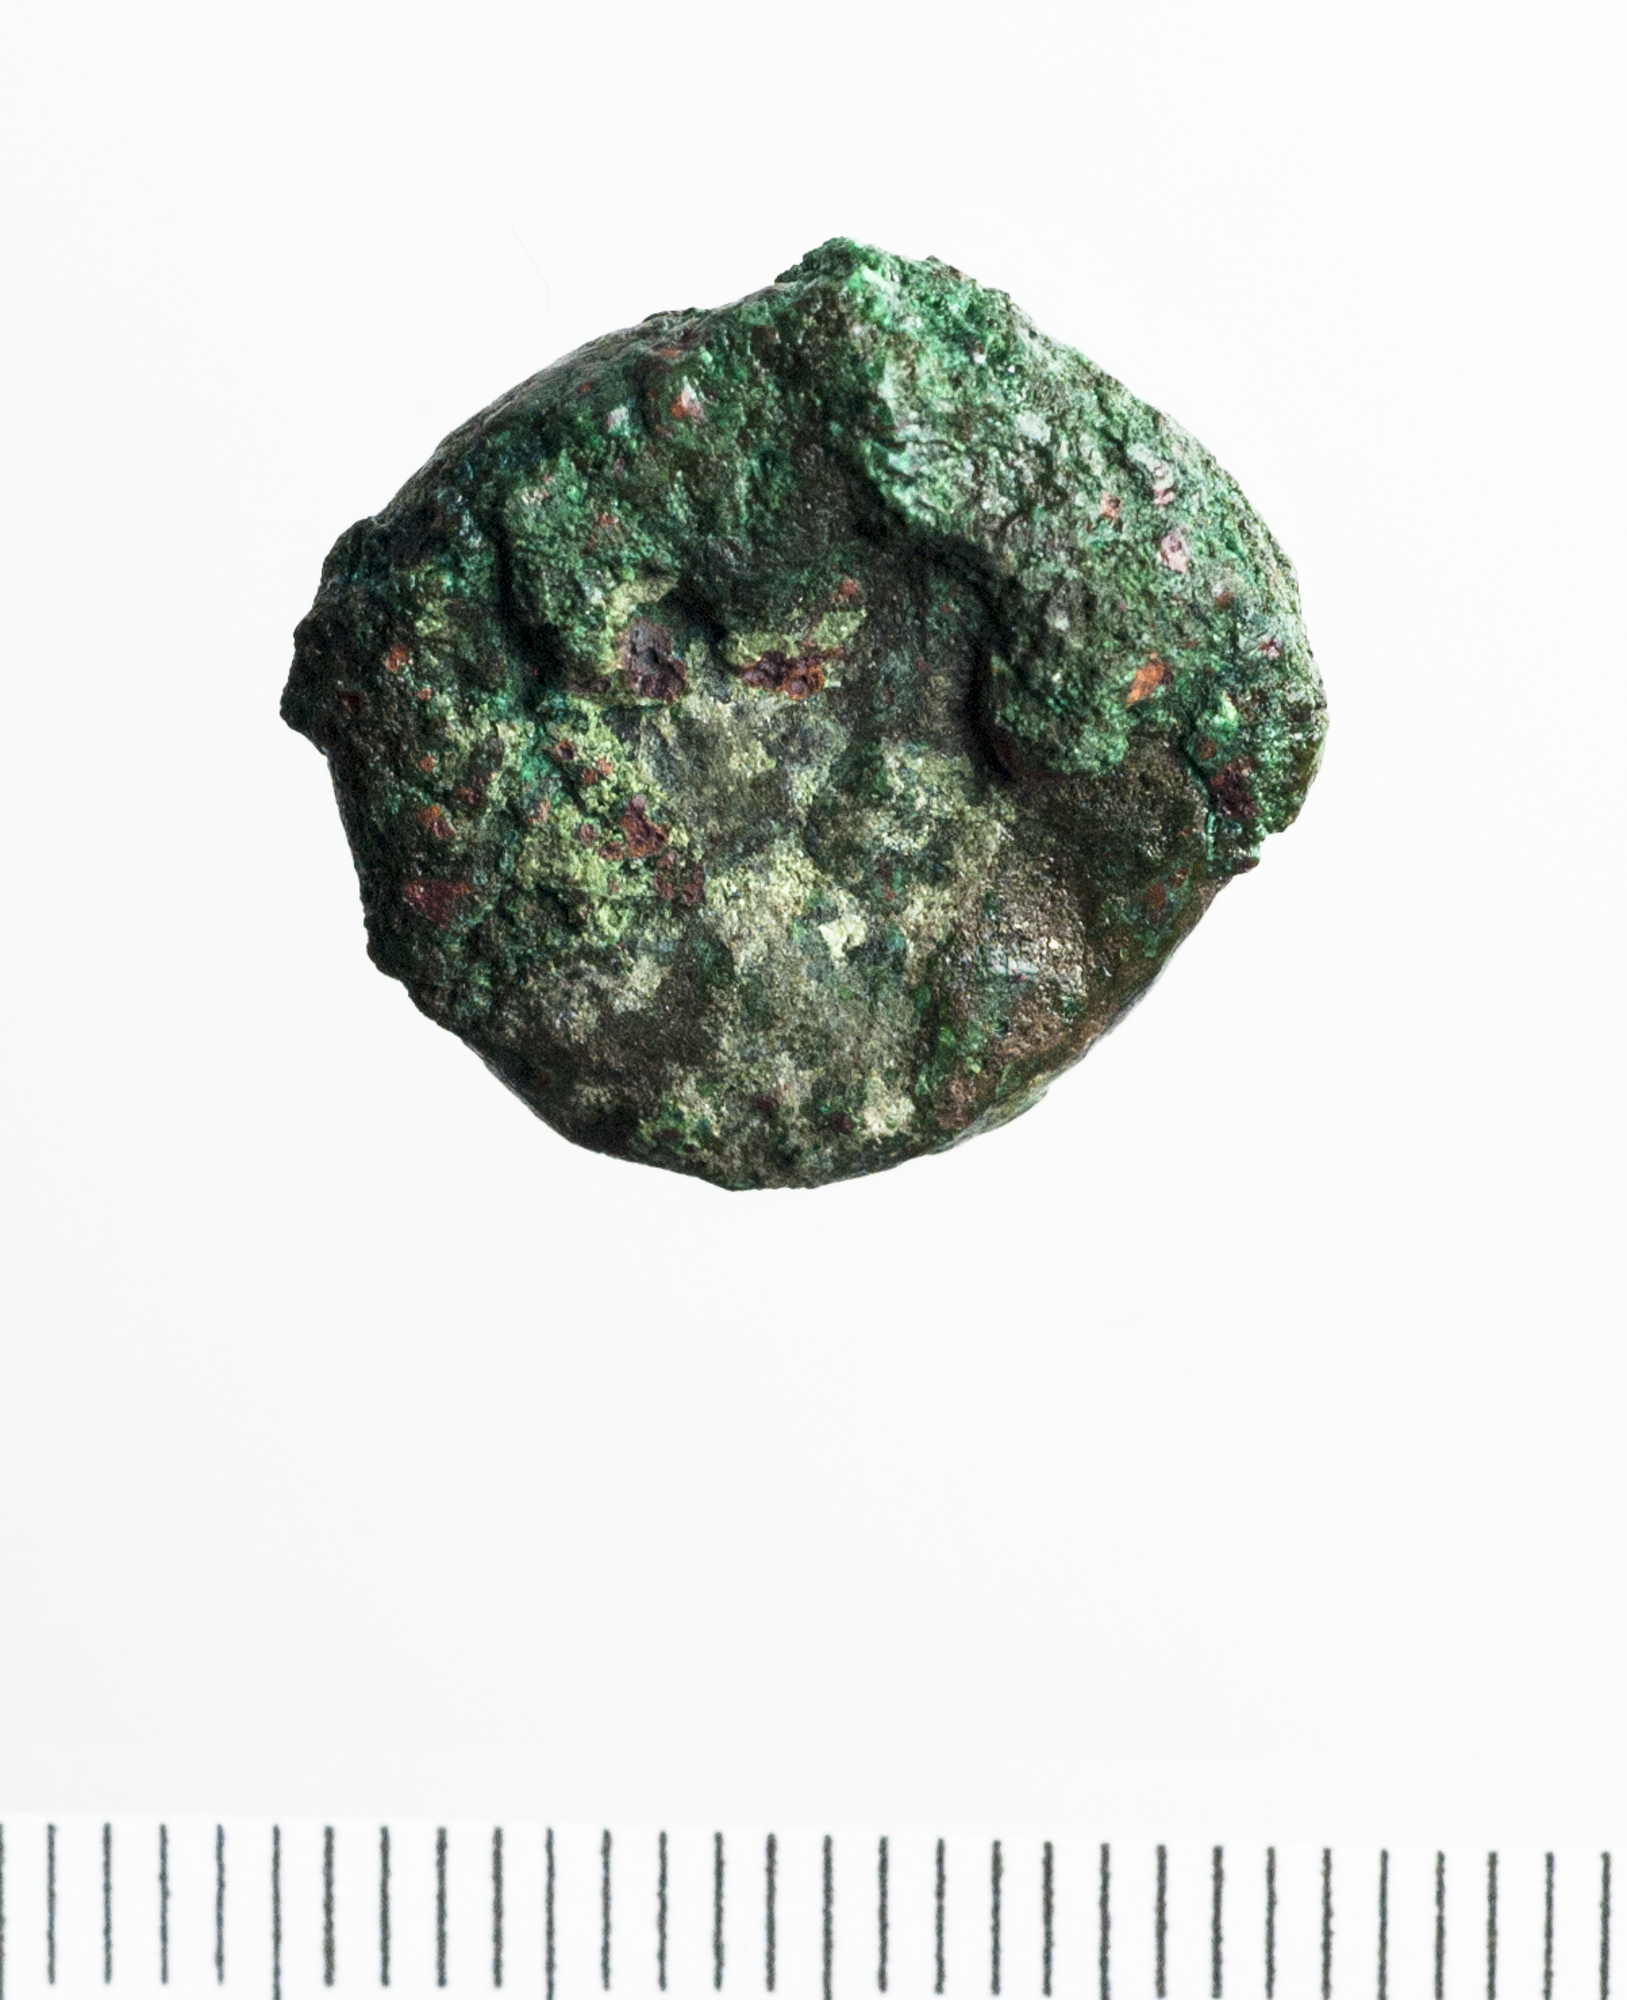 Hellenistic Bronze/Copper Alloy Denomination C of Sardis